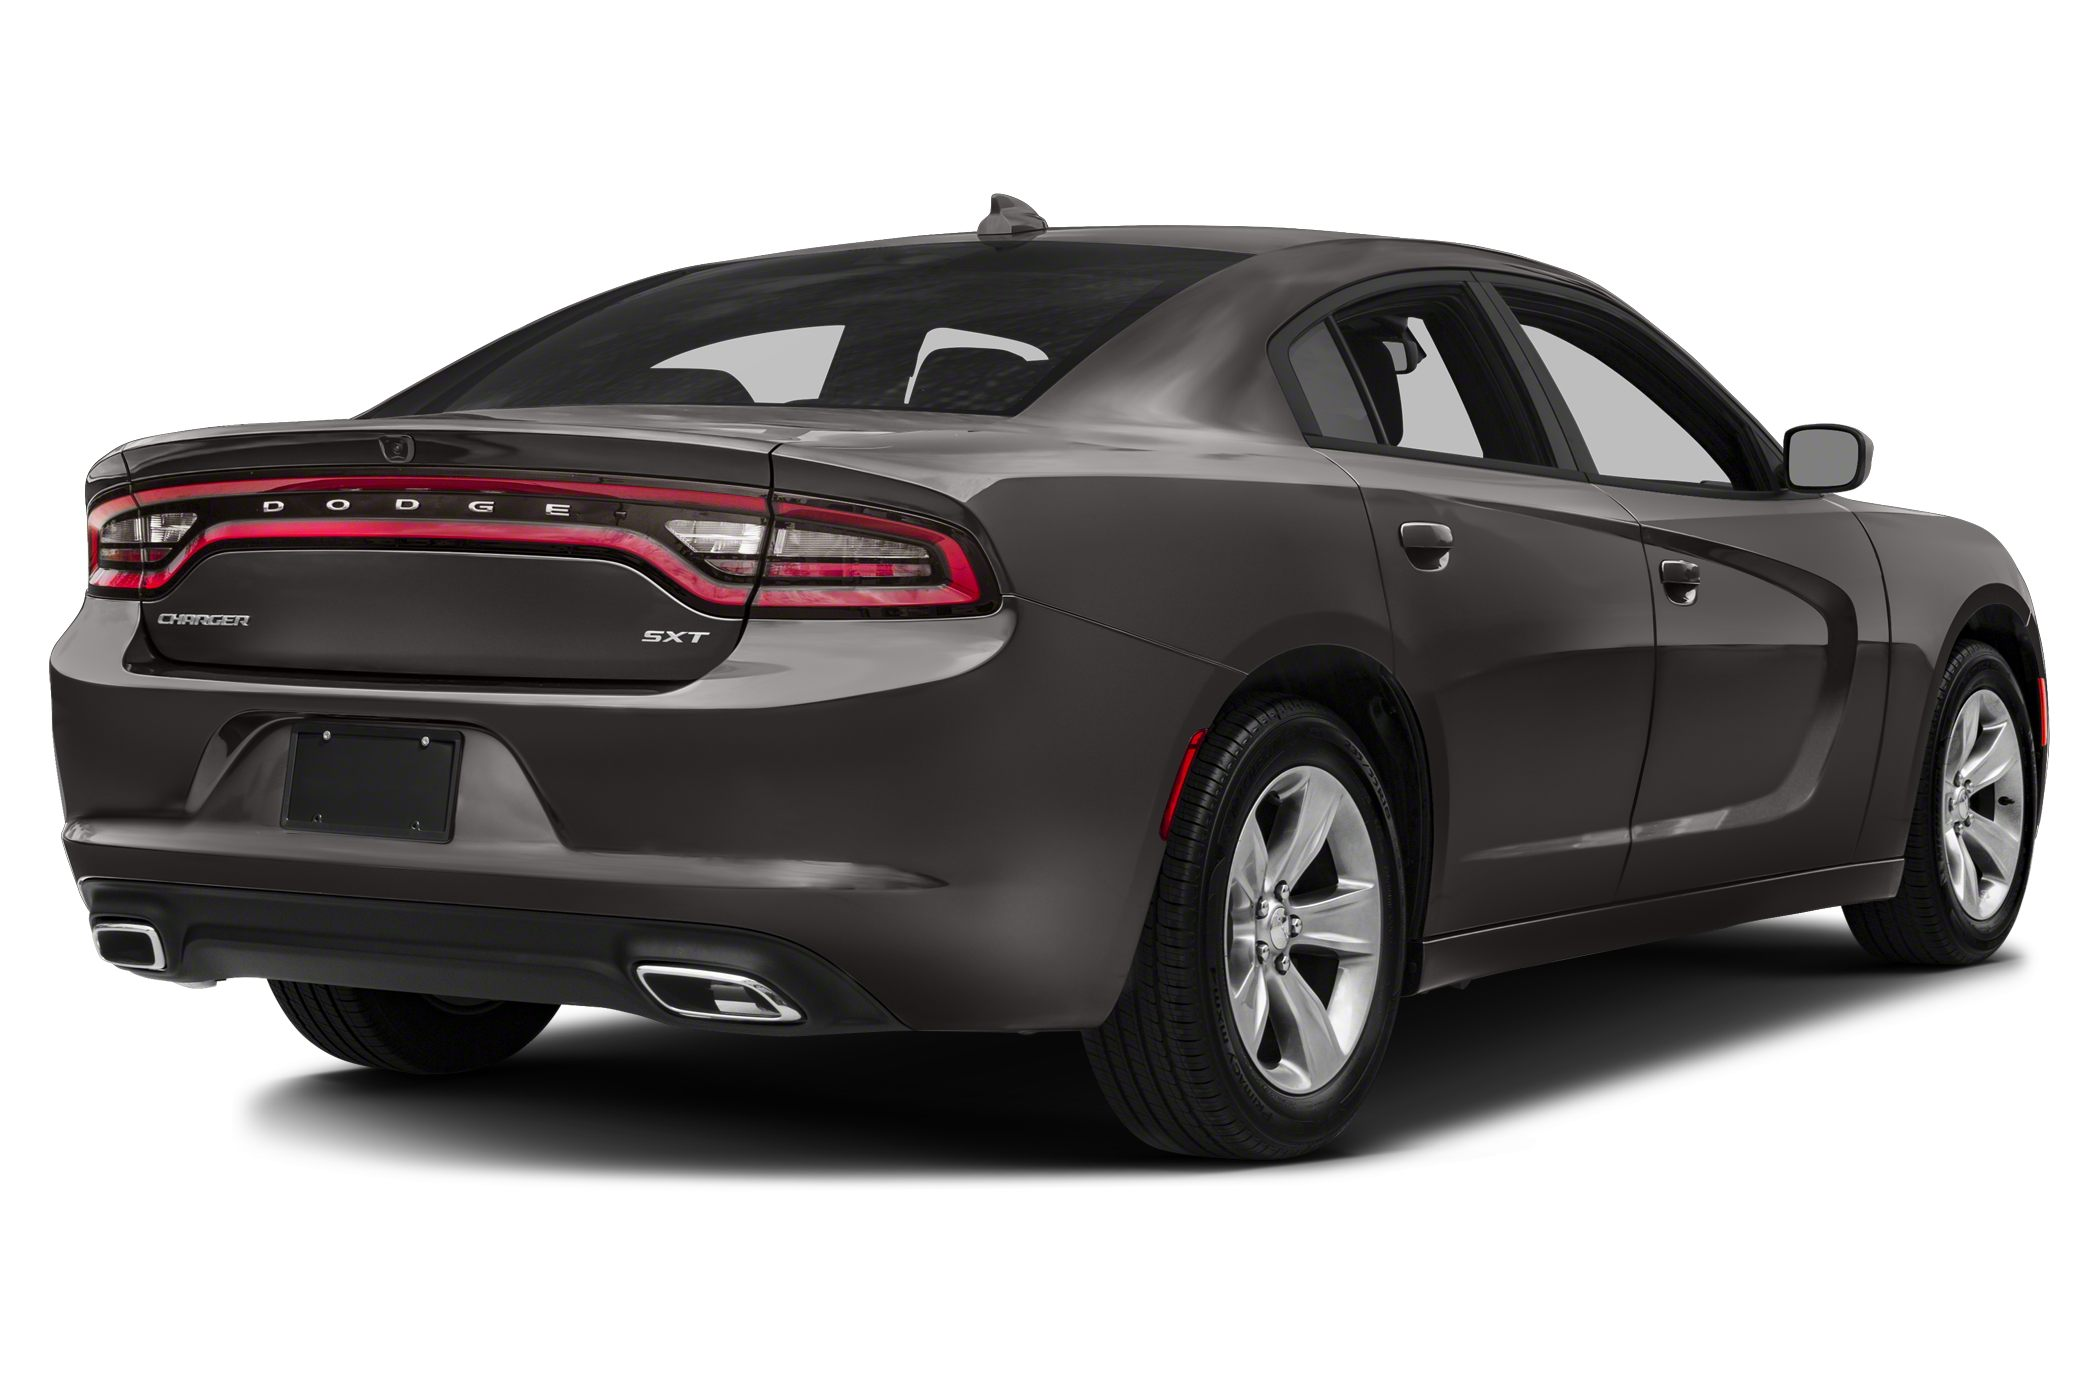 2016 Dodge Charger SXT Grey Clean CARFAX 3119 HighwayCity MPG 2016 Dodge Charger SXT RWD 8-Spee